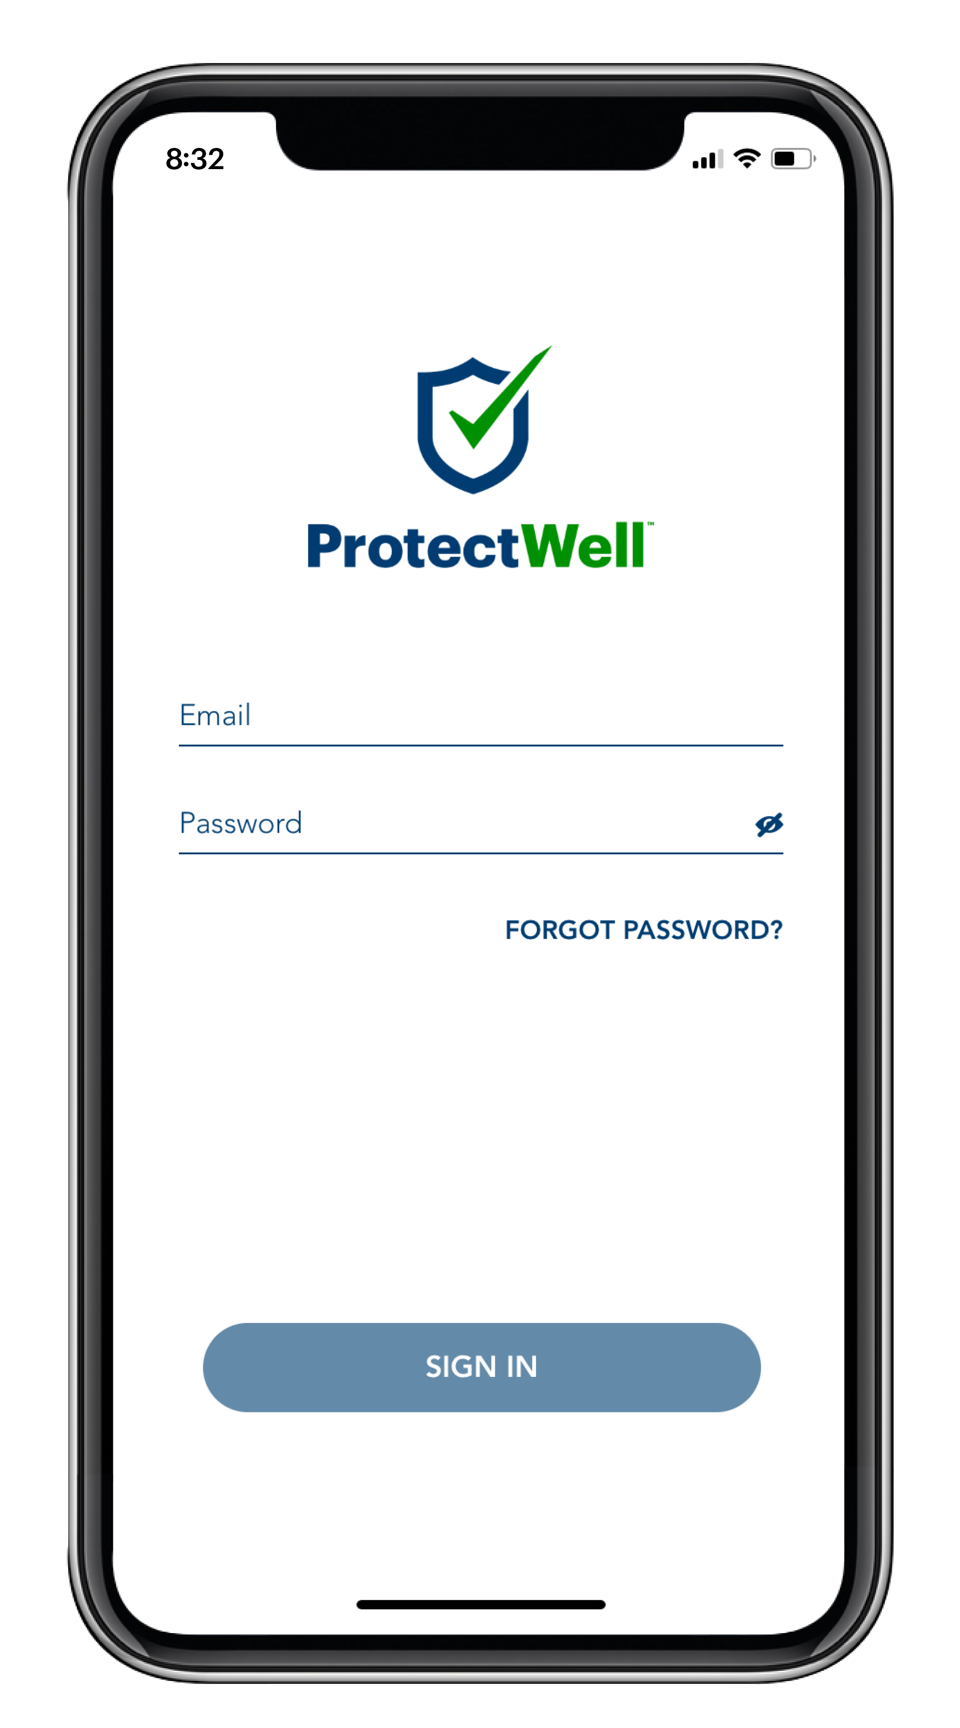 UnitedHealth Group and Microsoft have launched a free protocol for employers called ProtectWell that  uses the insurer's clinical and data analytics and the artificial intelligence and analytics capabilities of Microsoft to screen workers for symptoms of the coronavirus strain COVID-19.